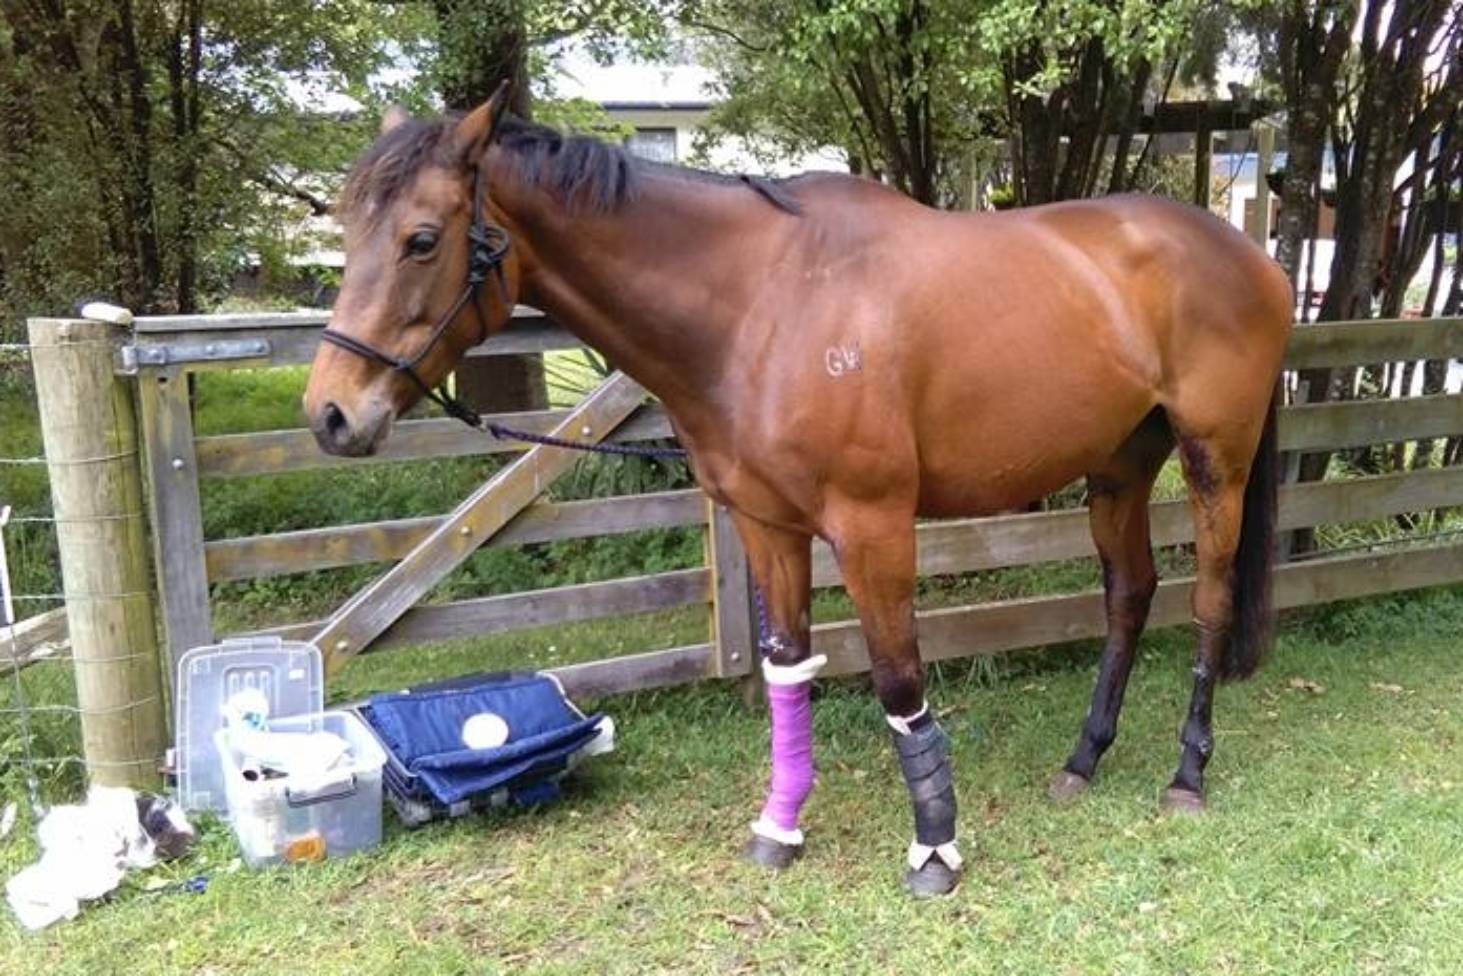 Horse injuries prompt renewed calls for firework bans